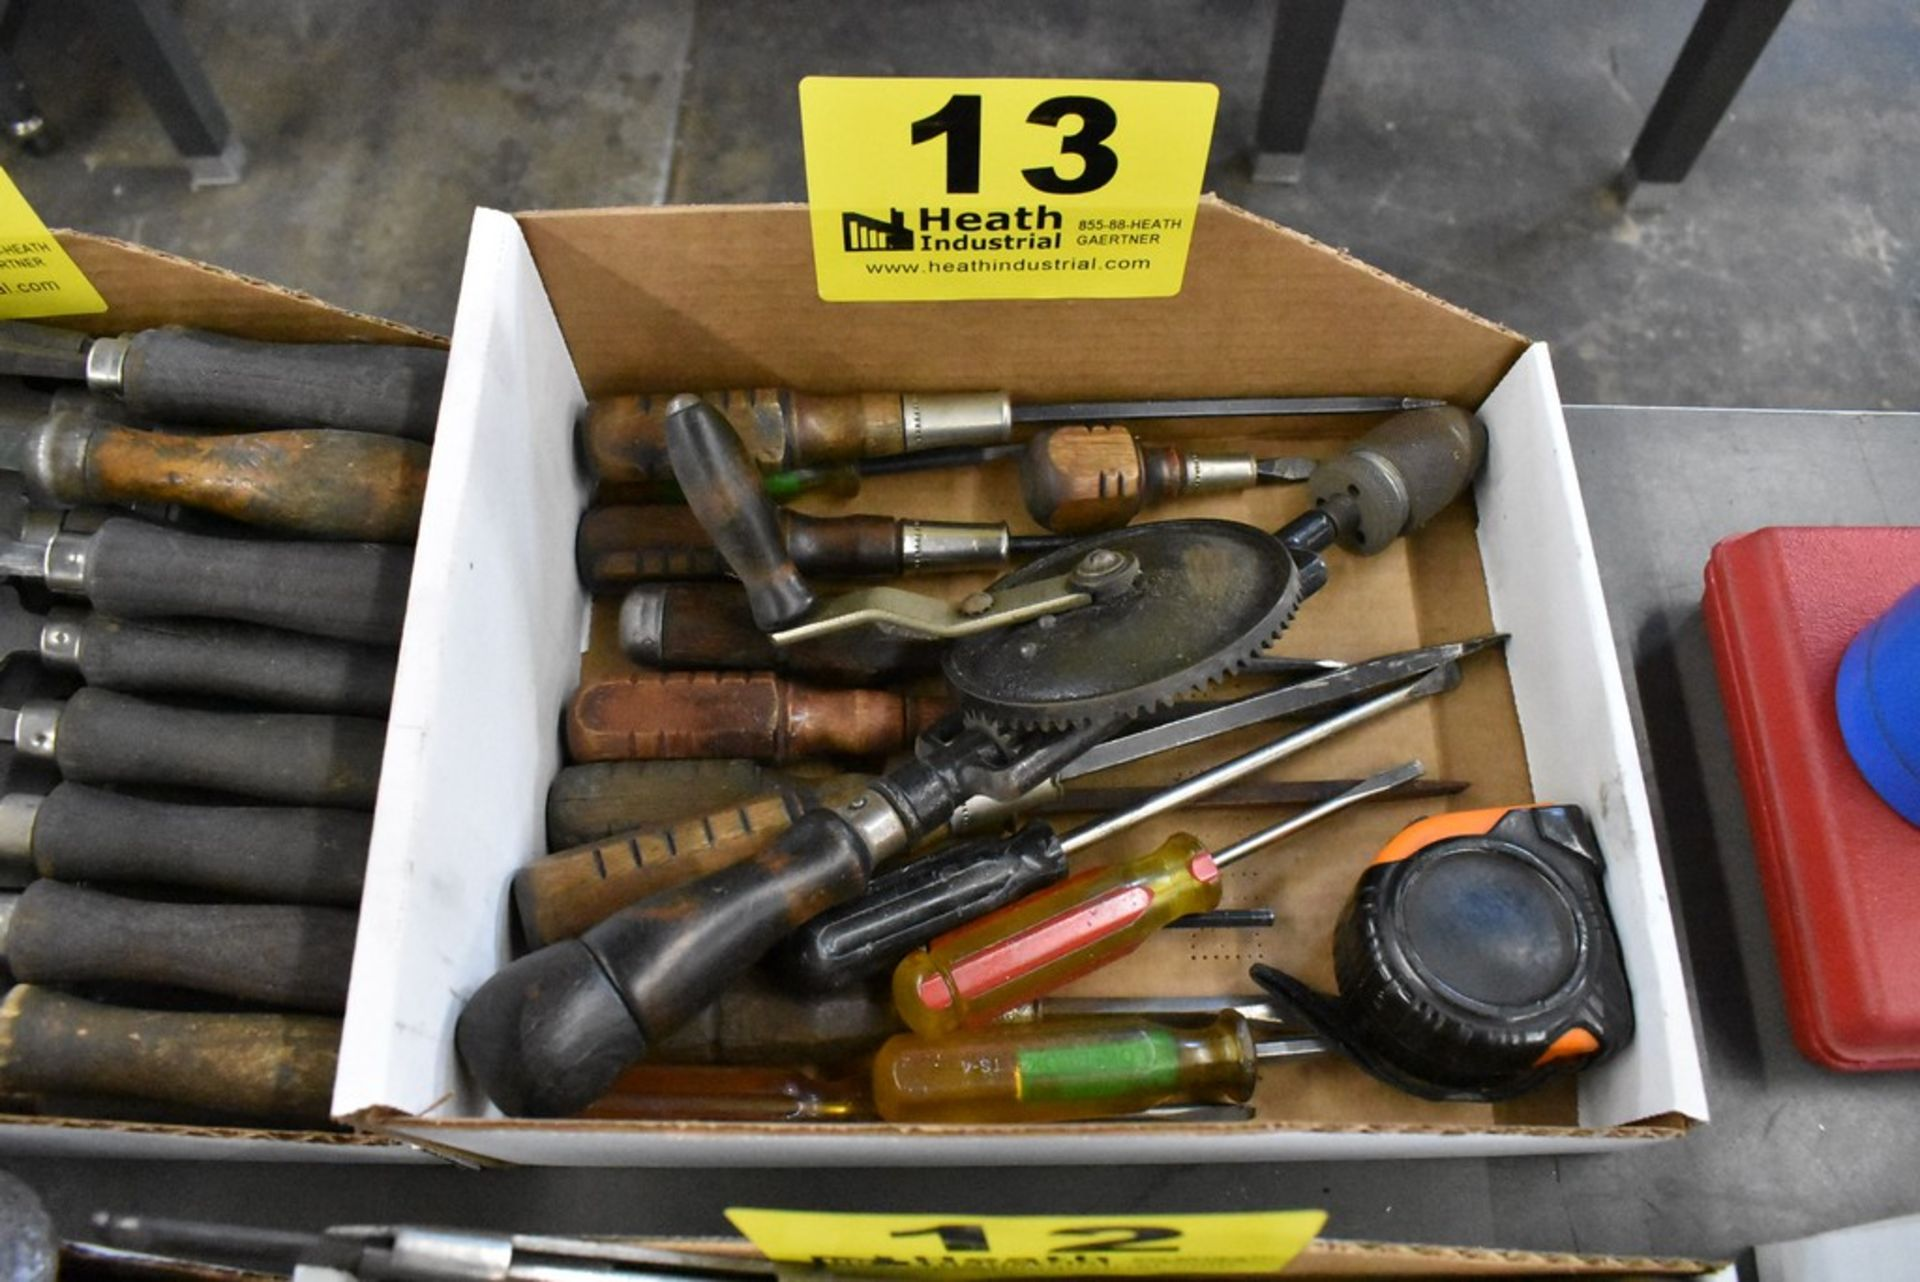 ASSORTED SCREWDRIVERS & BRACE DRILL - Image 2 of 2